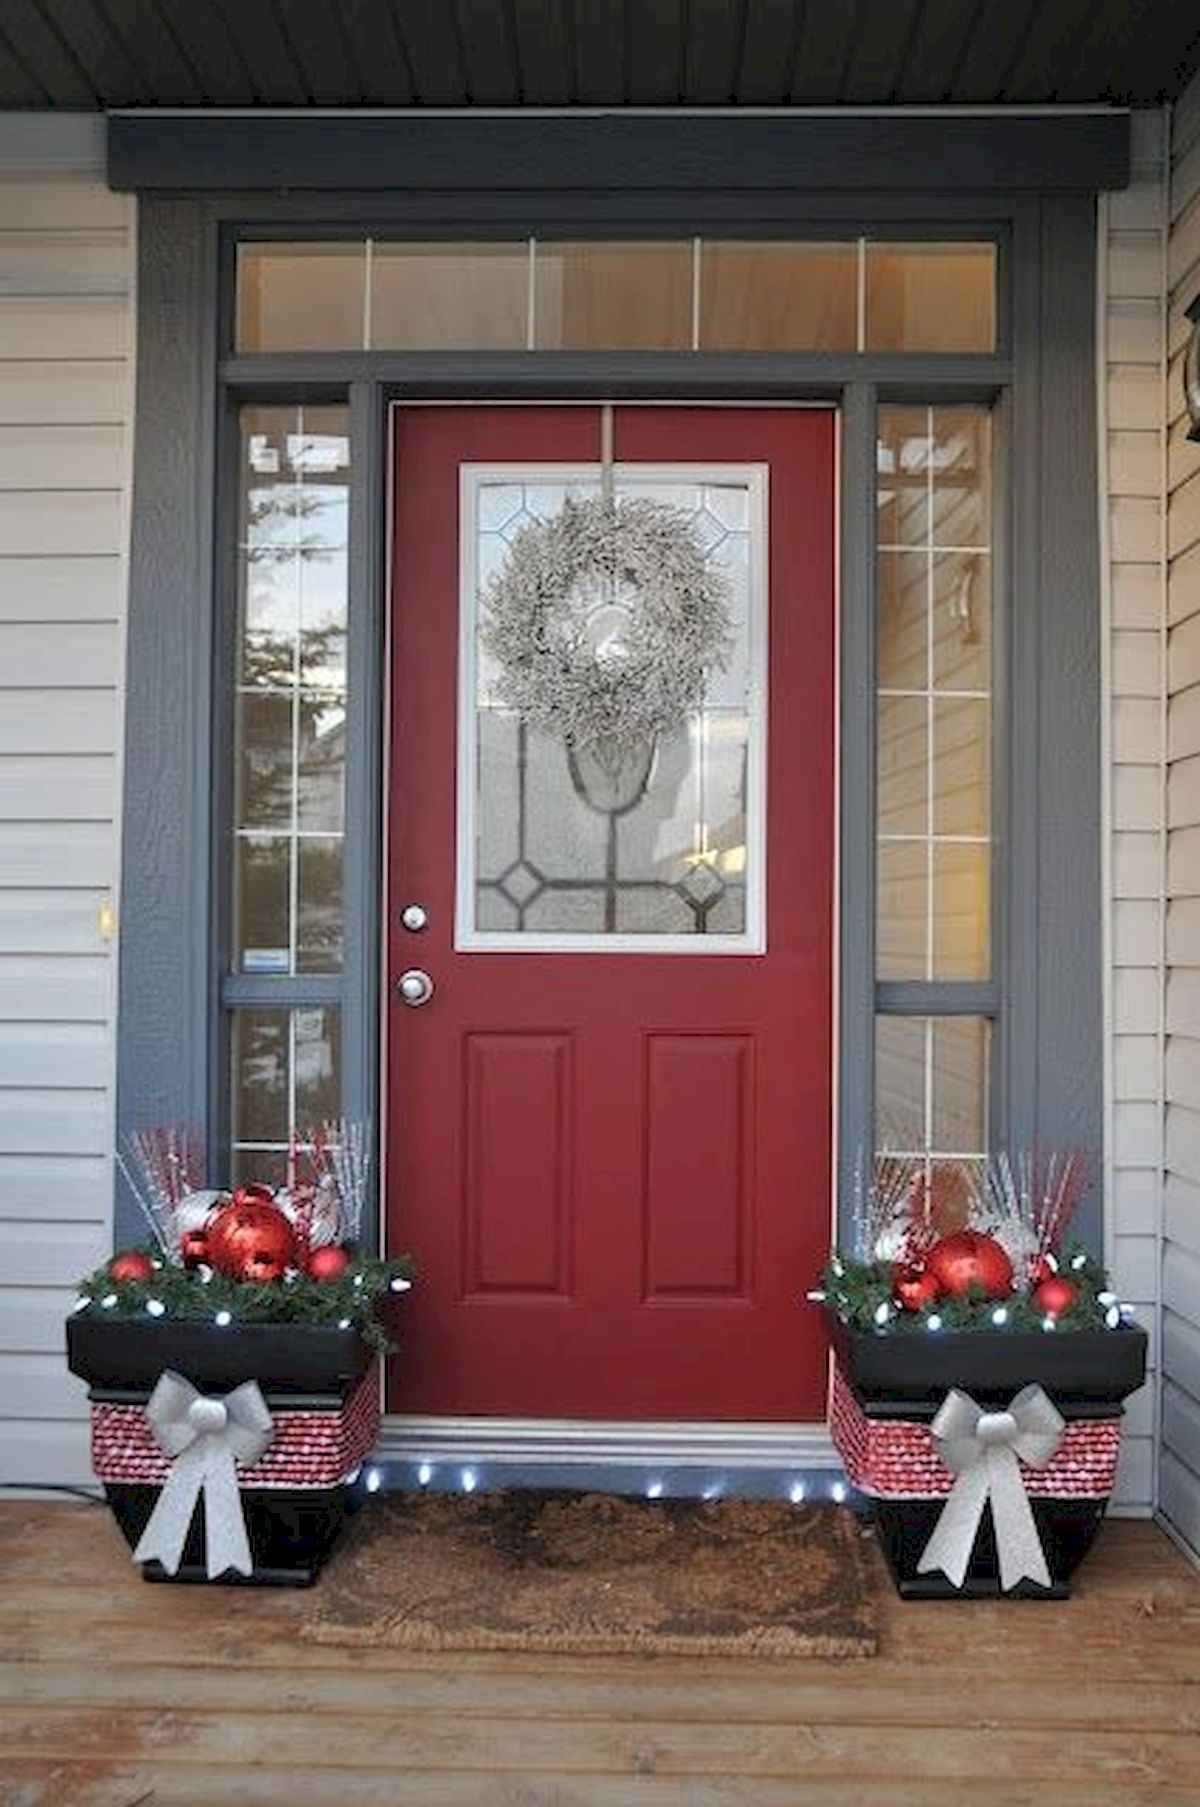 50 stunning front porch christmas lights decorations ideas (32)